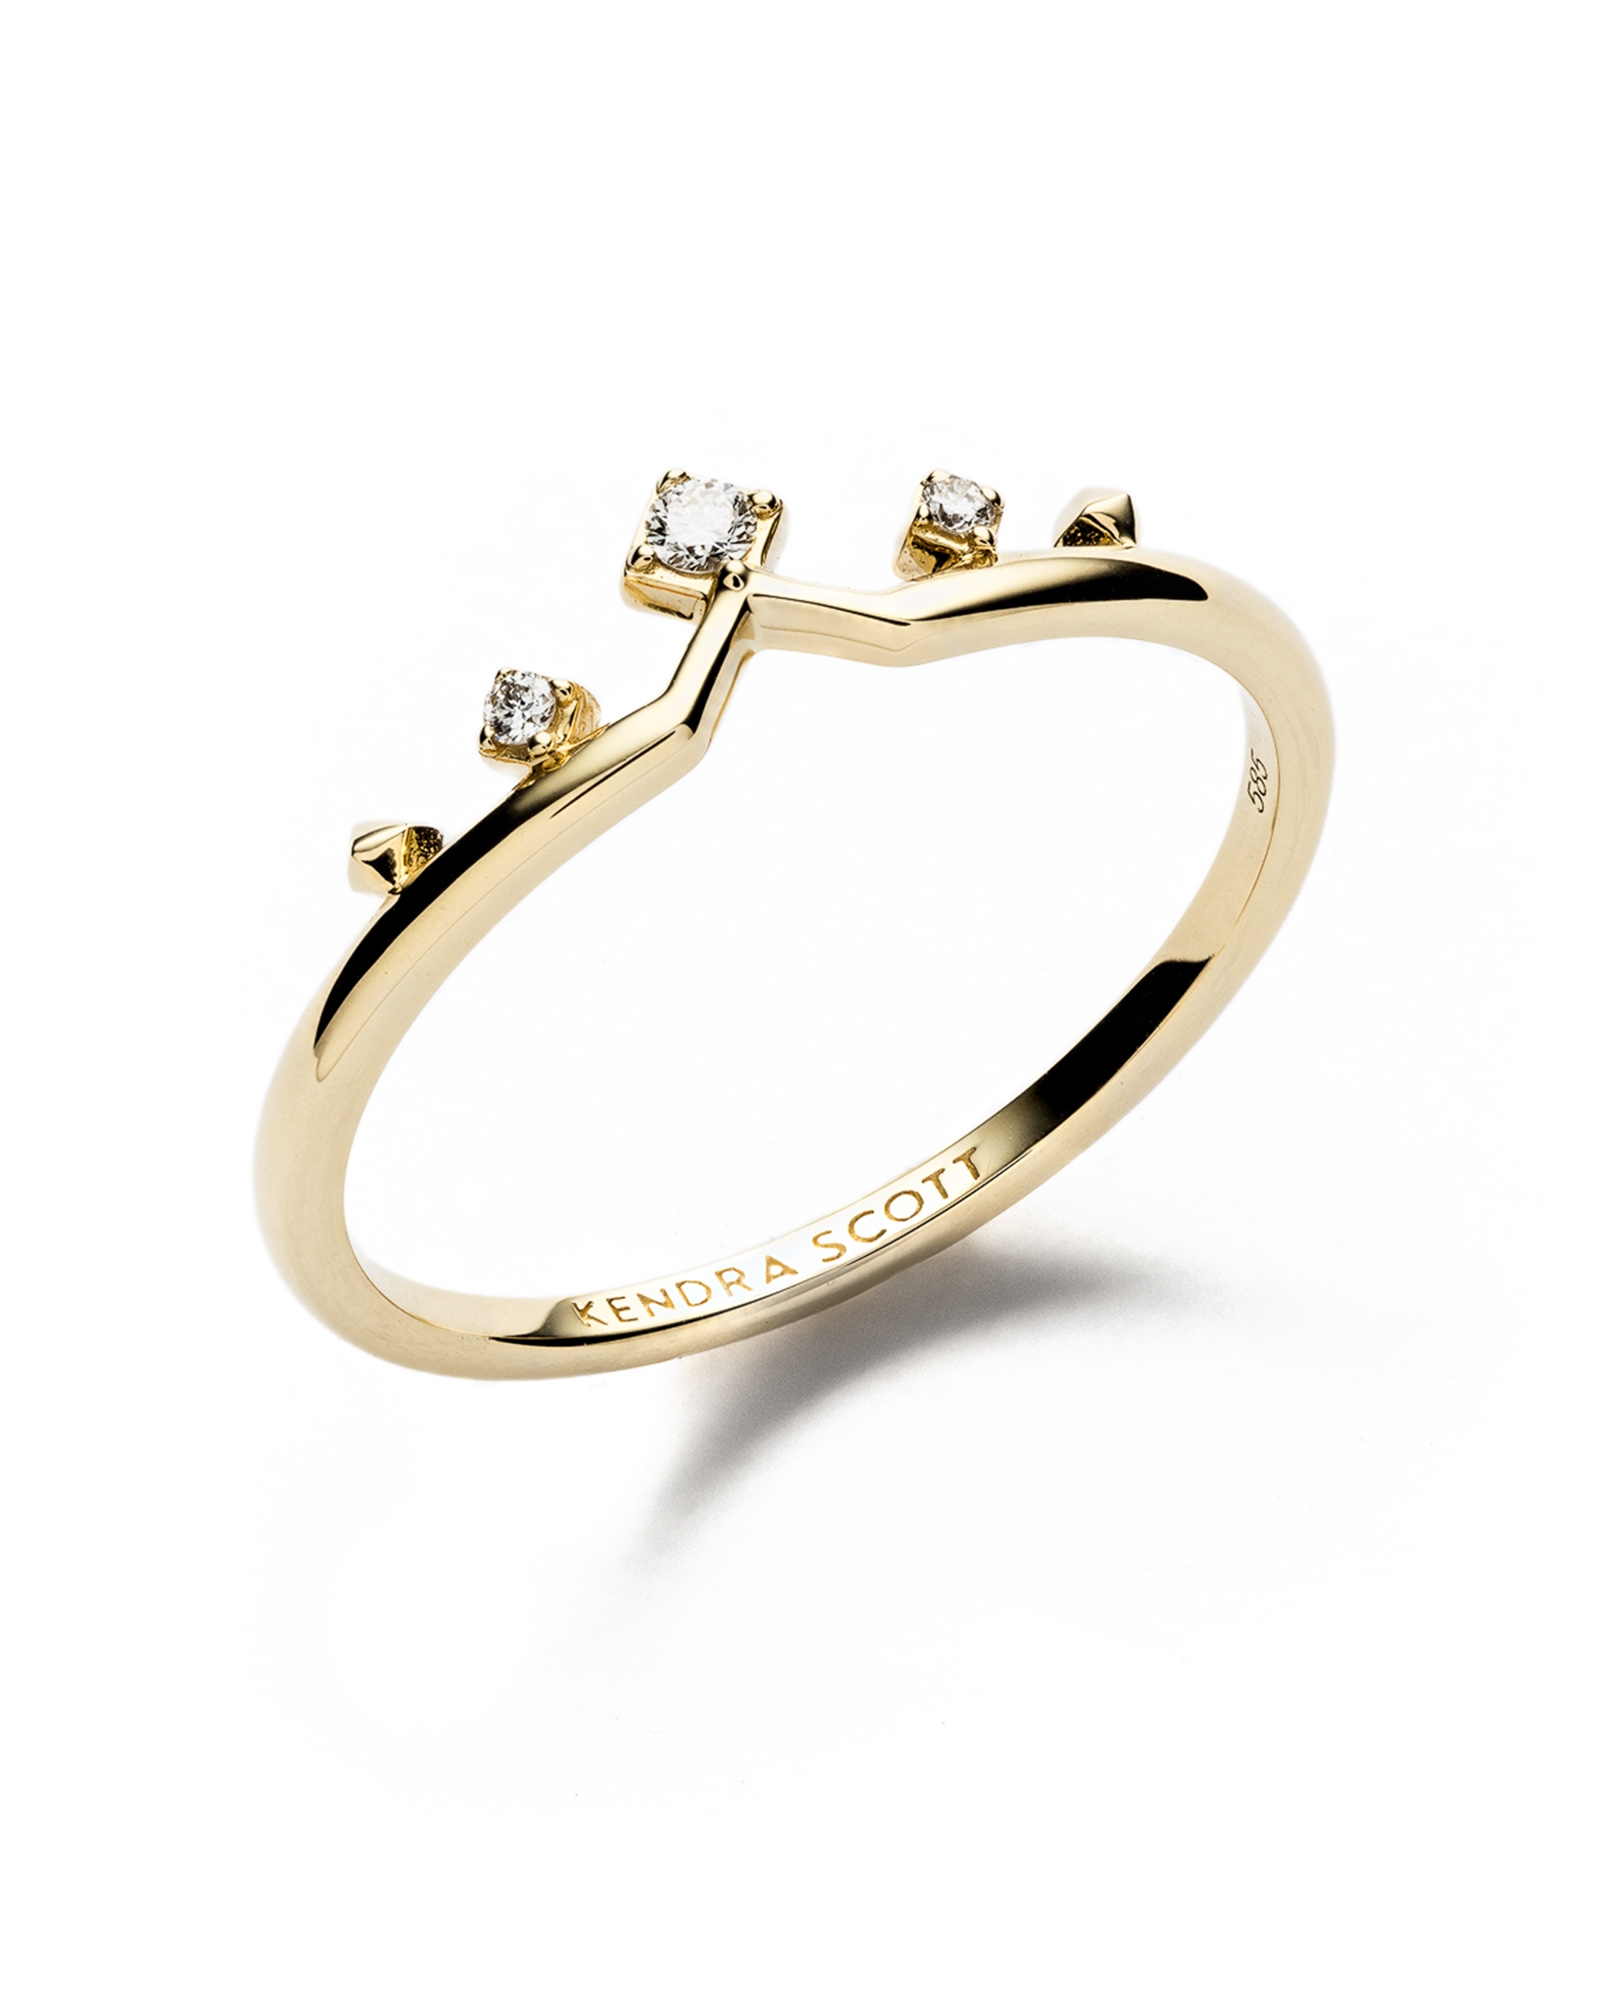 Michelle 14k Yellow Gold Band Ring in White Diamond - 5